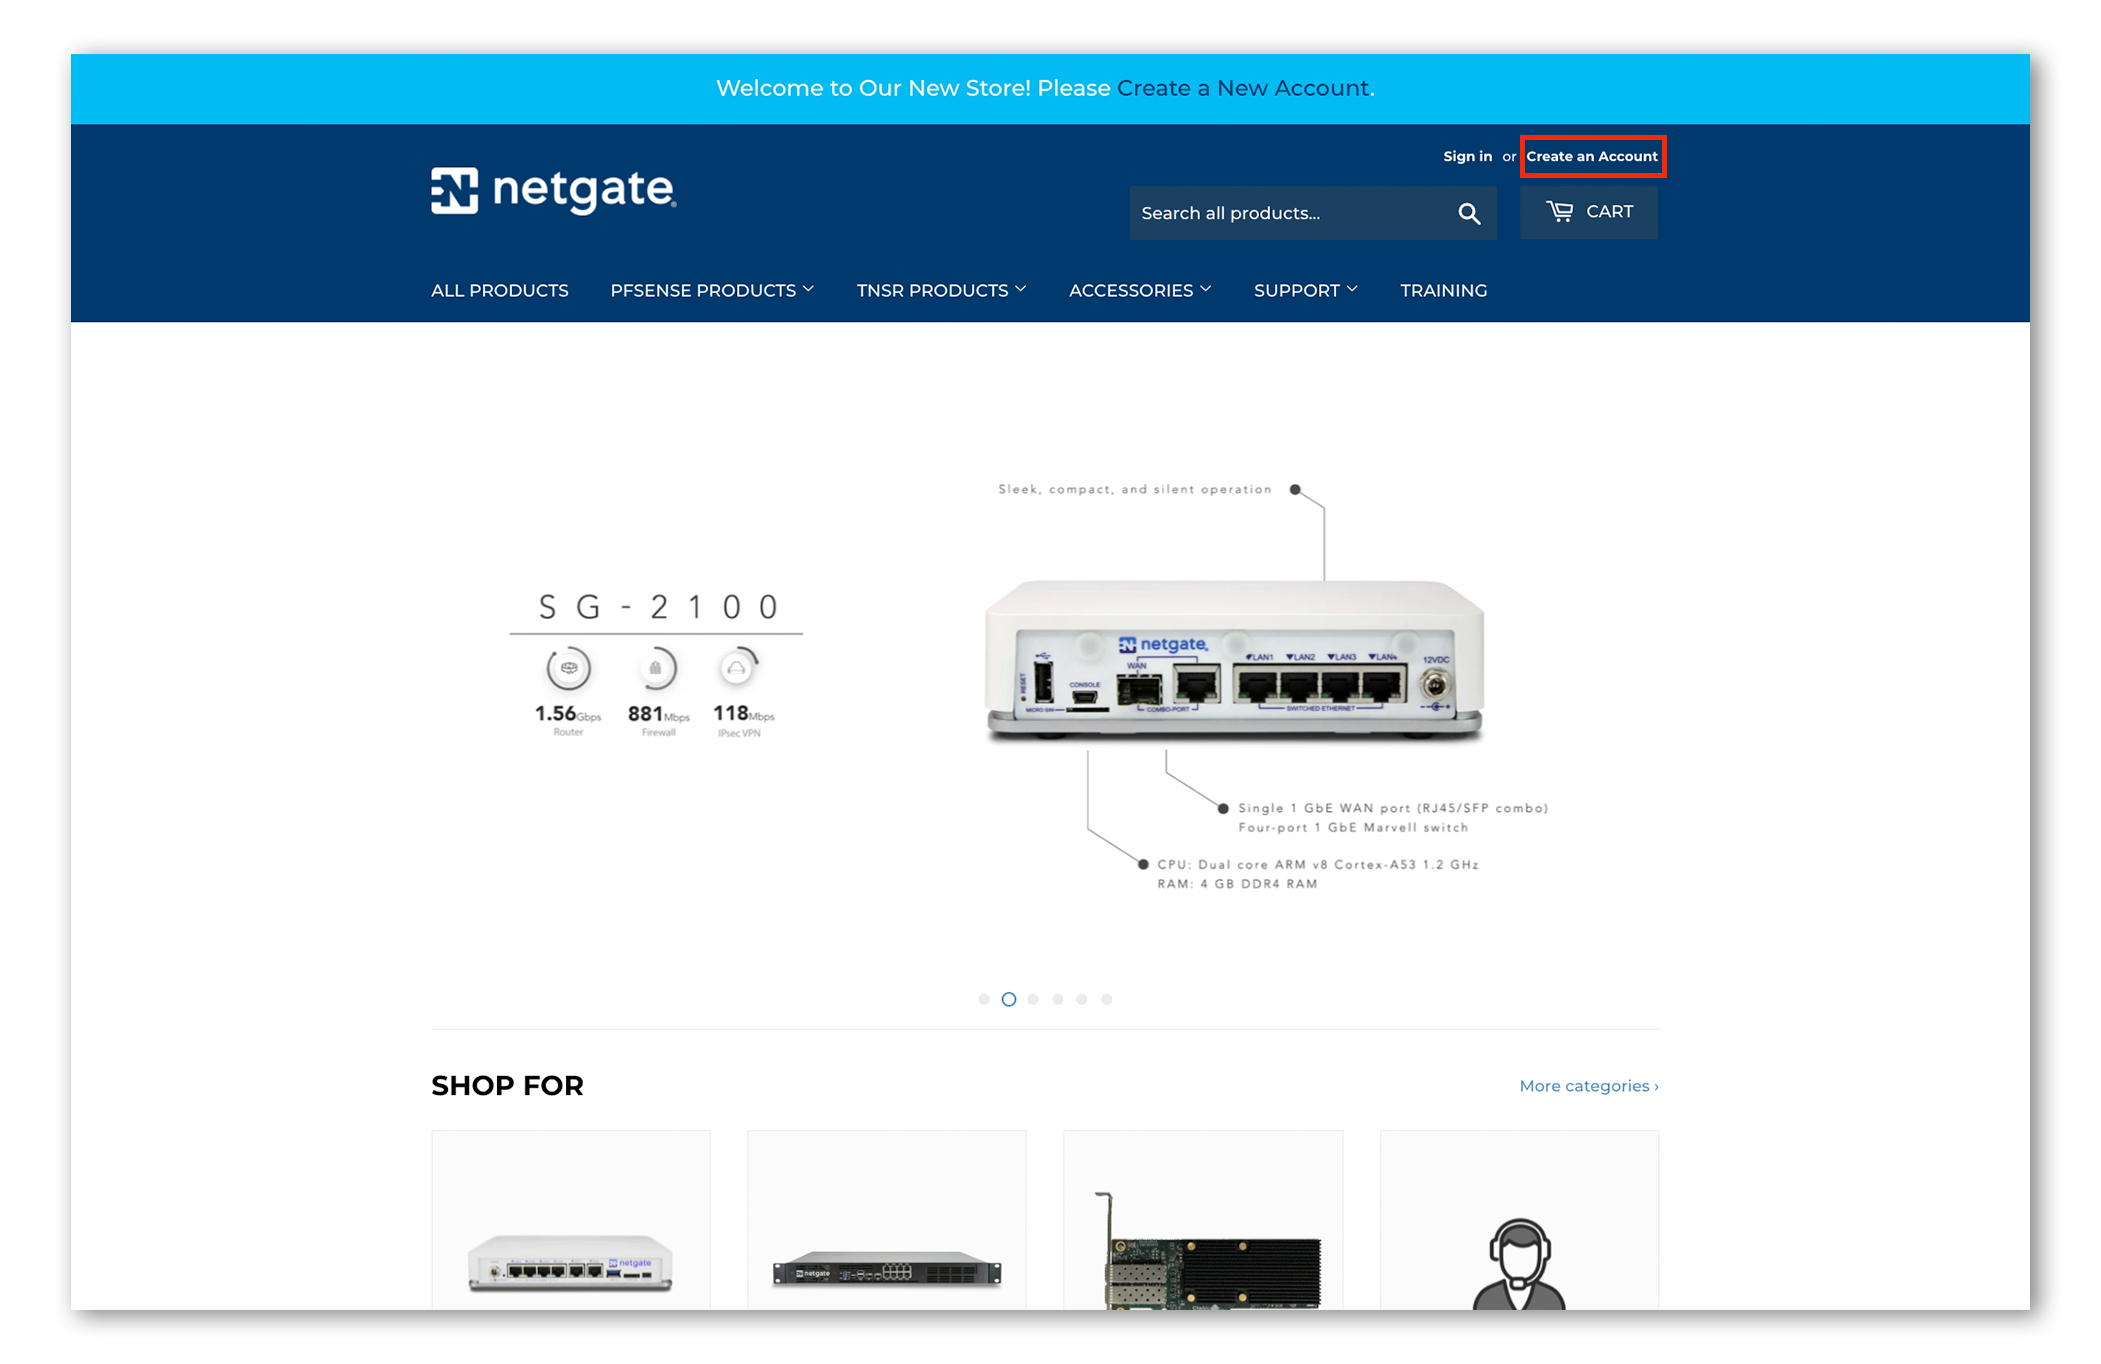 Netgate Introduces New e-Commerce Store and Appliance Ordering Options